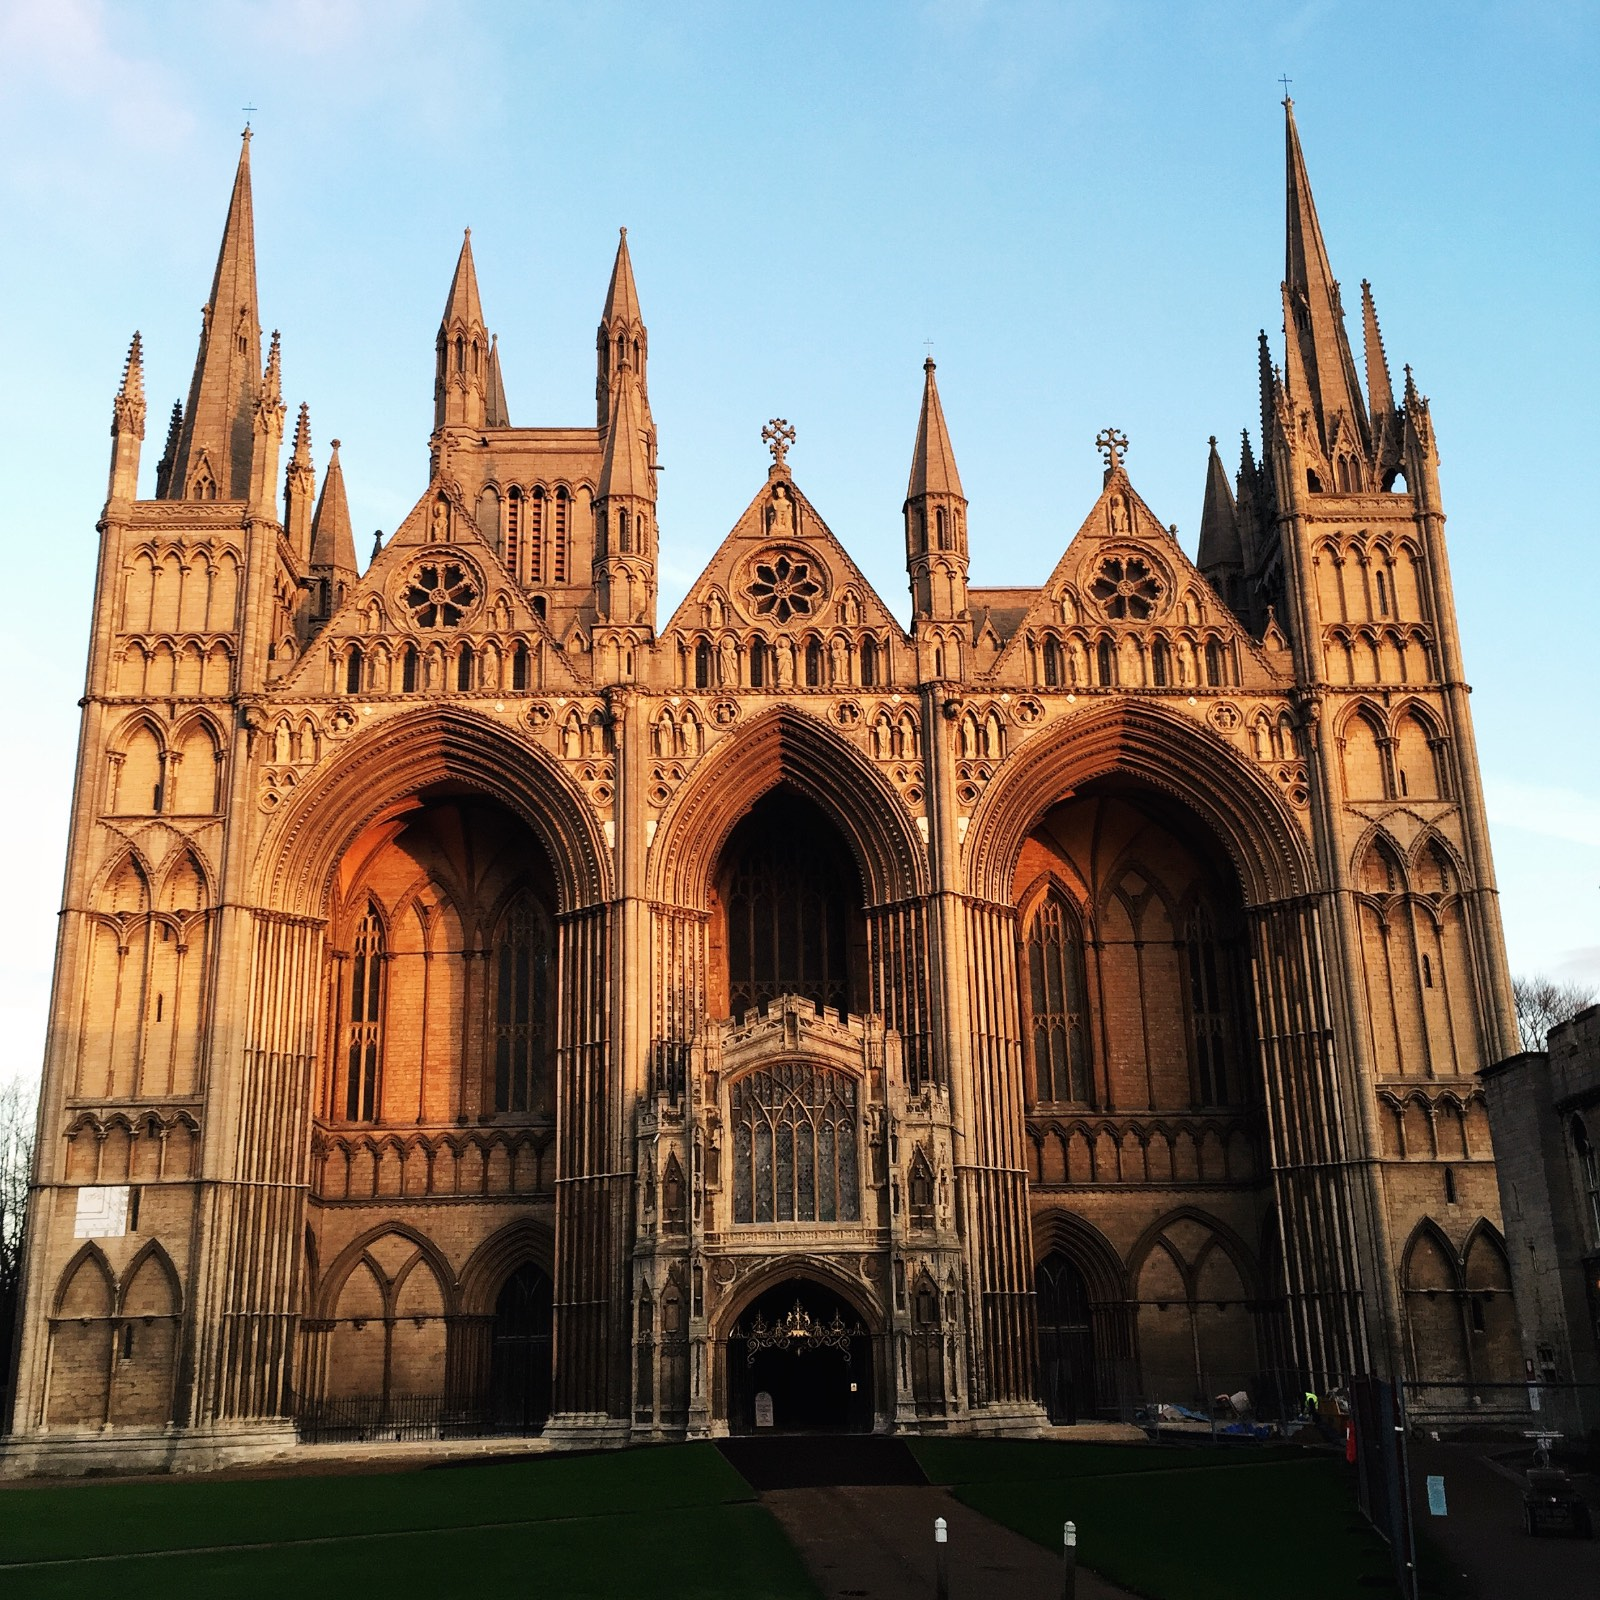 The Cathedral at Peterborough